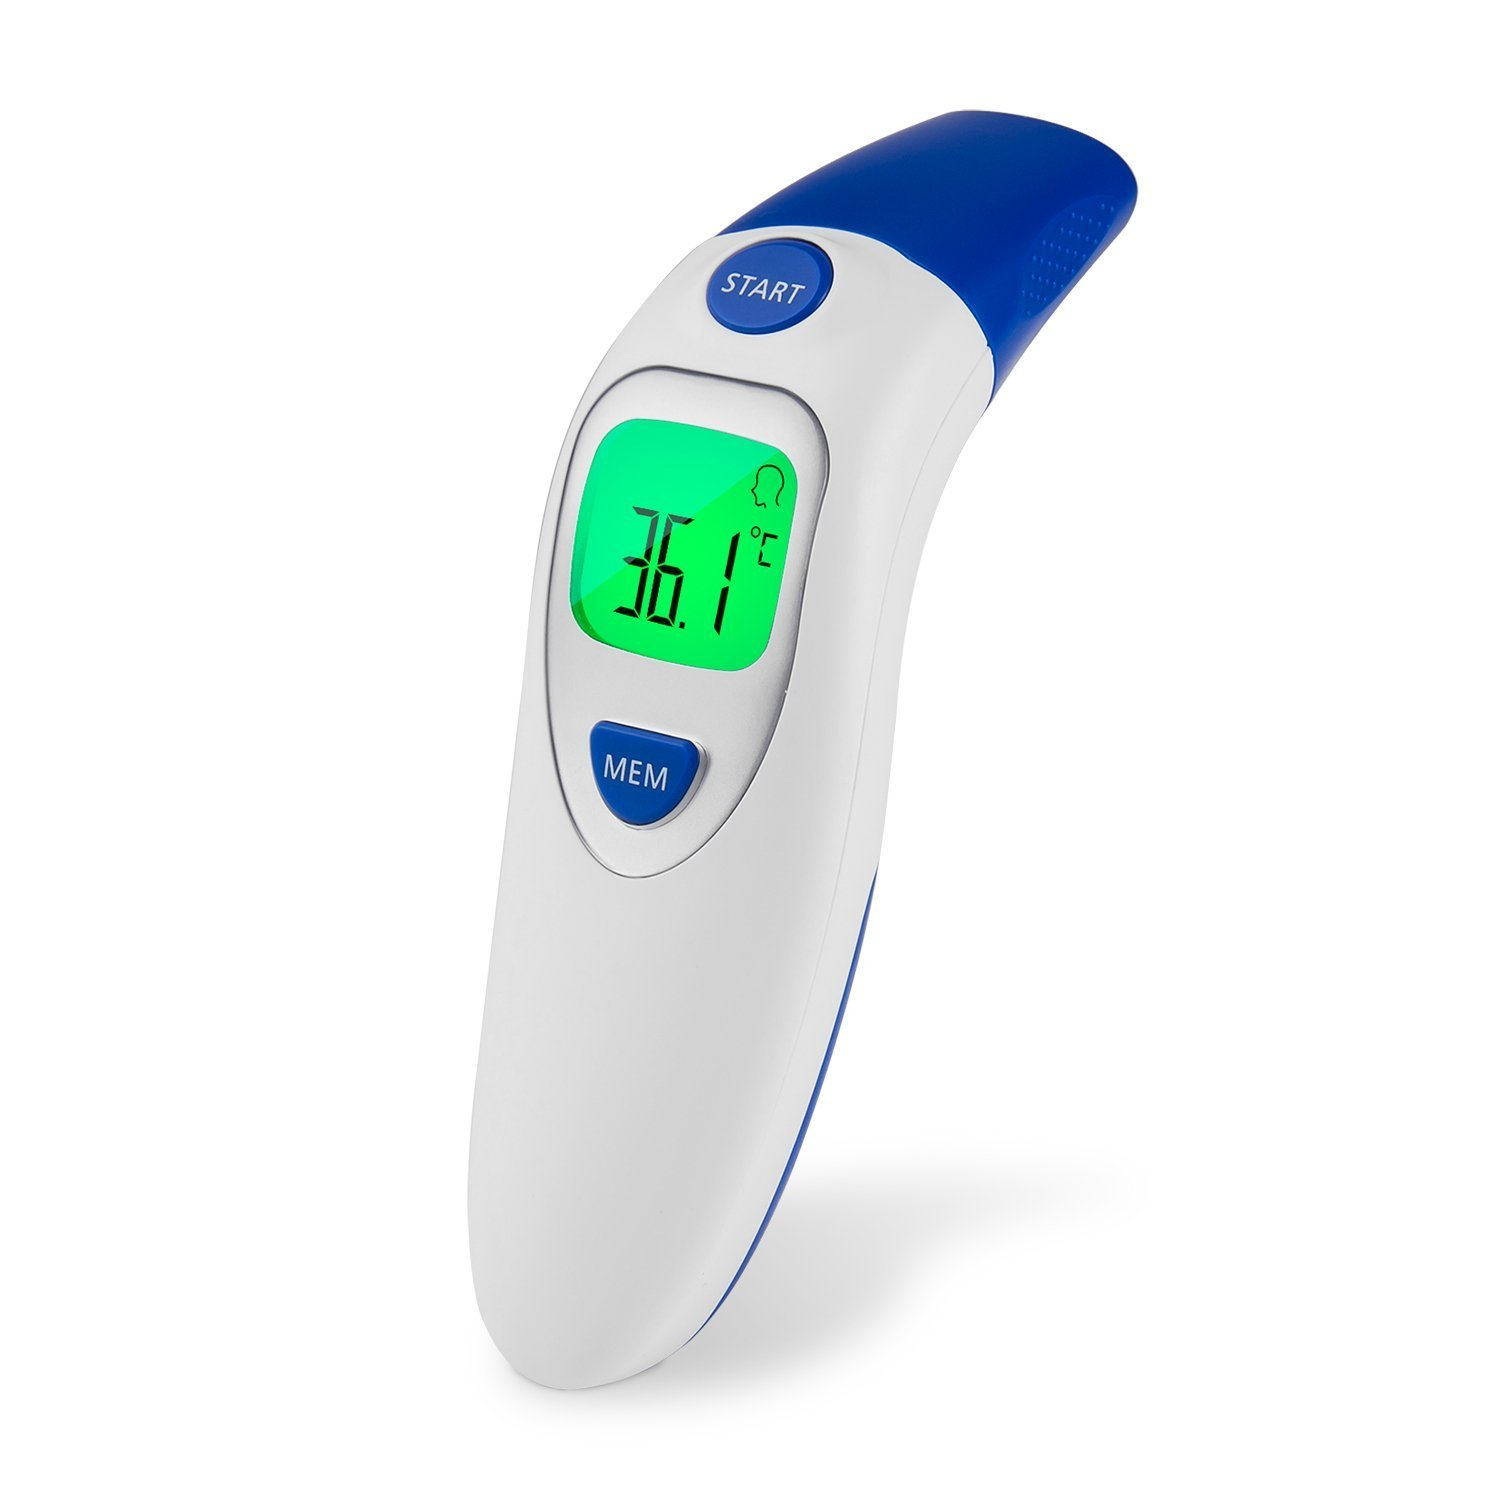 Medical Forehead and Ear Thermometer,Infrared Digital Thermometer Suitable for Baby, Infant, Toddler and Adults with FDA and CE Approved (White)